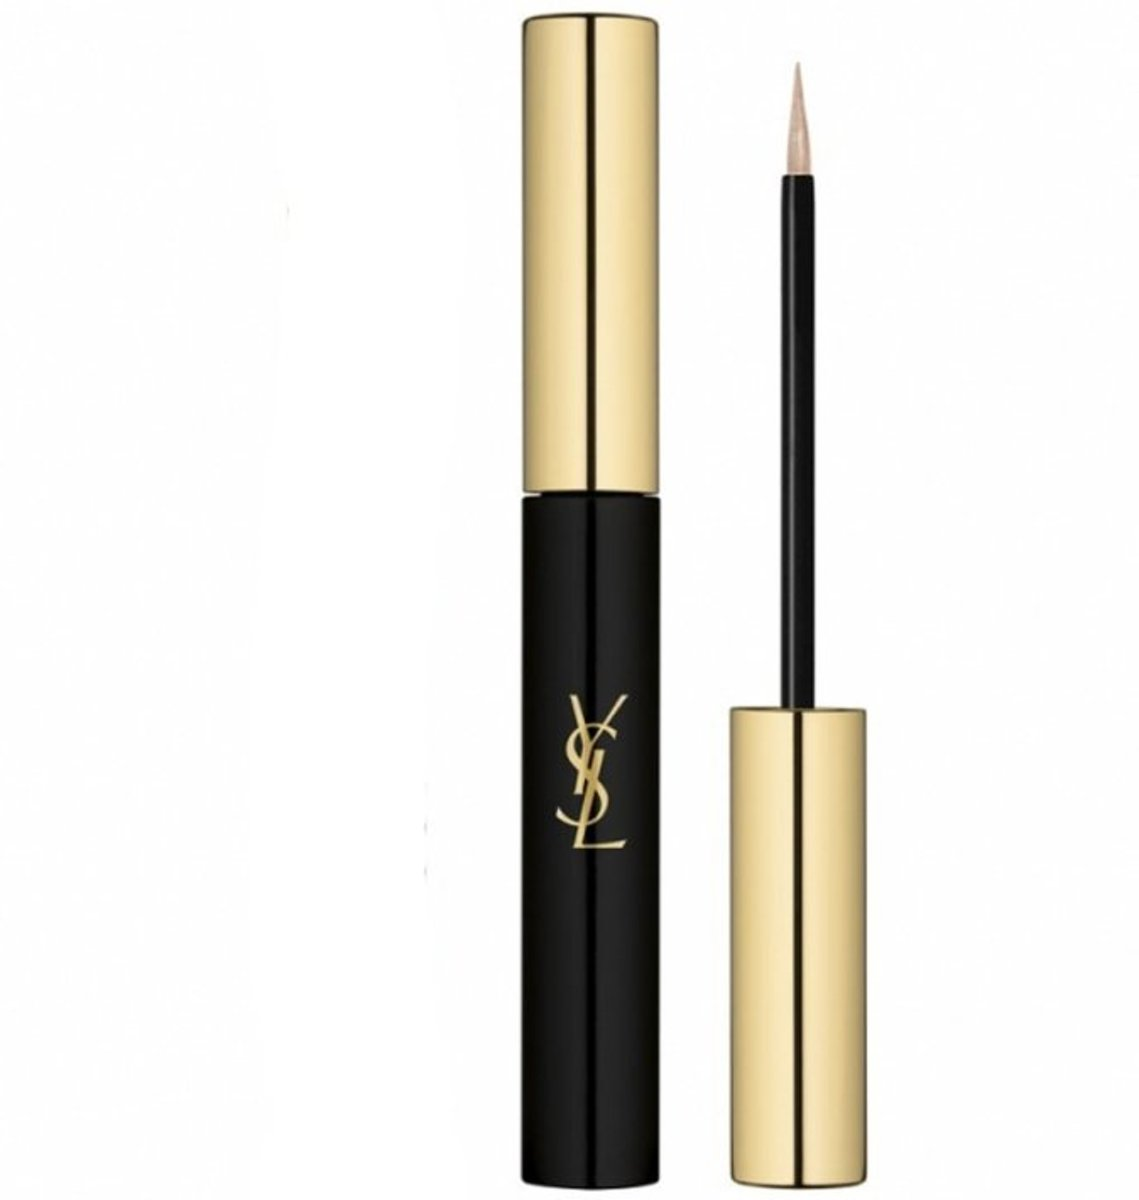 Yves Saint Laurent Couture Eyeliner 3 ml - 2 - Blue Iconic